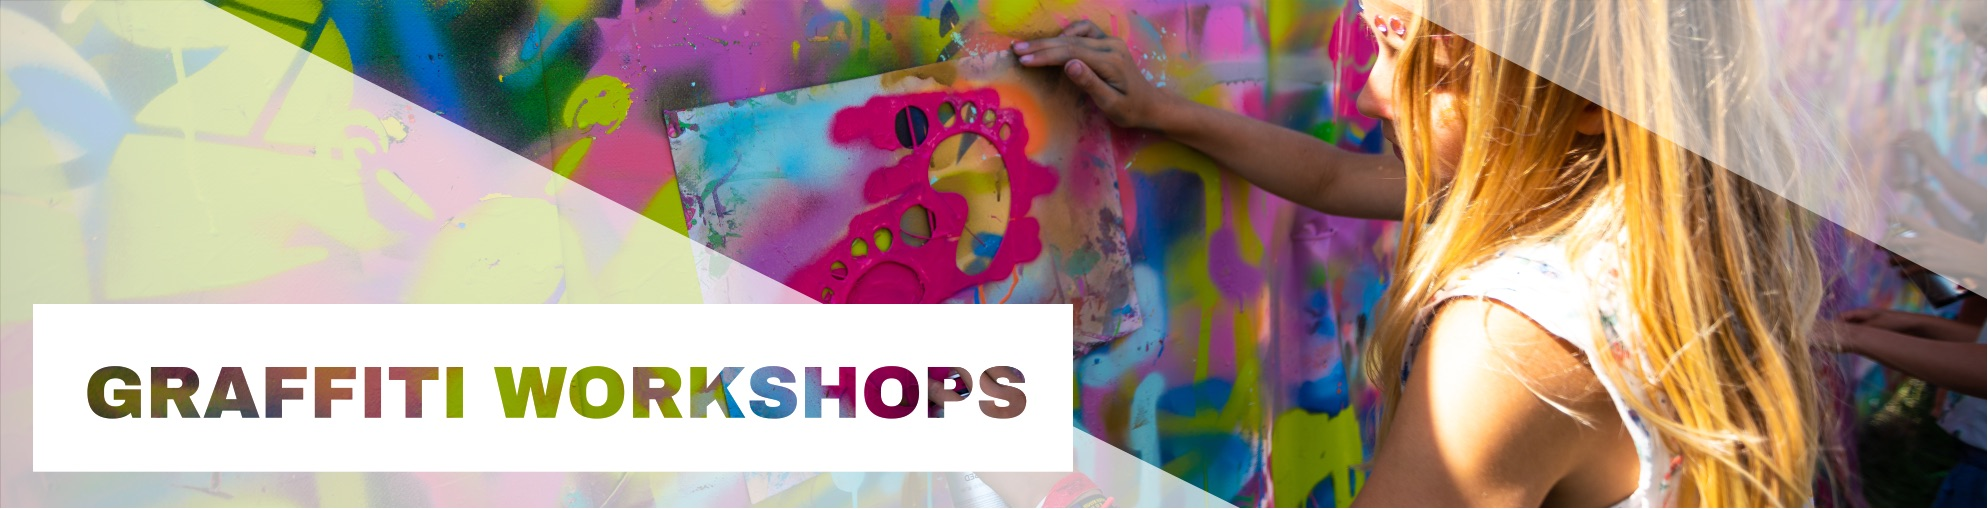 graffiti workshops header